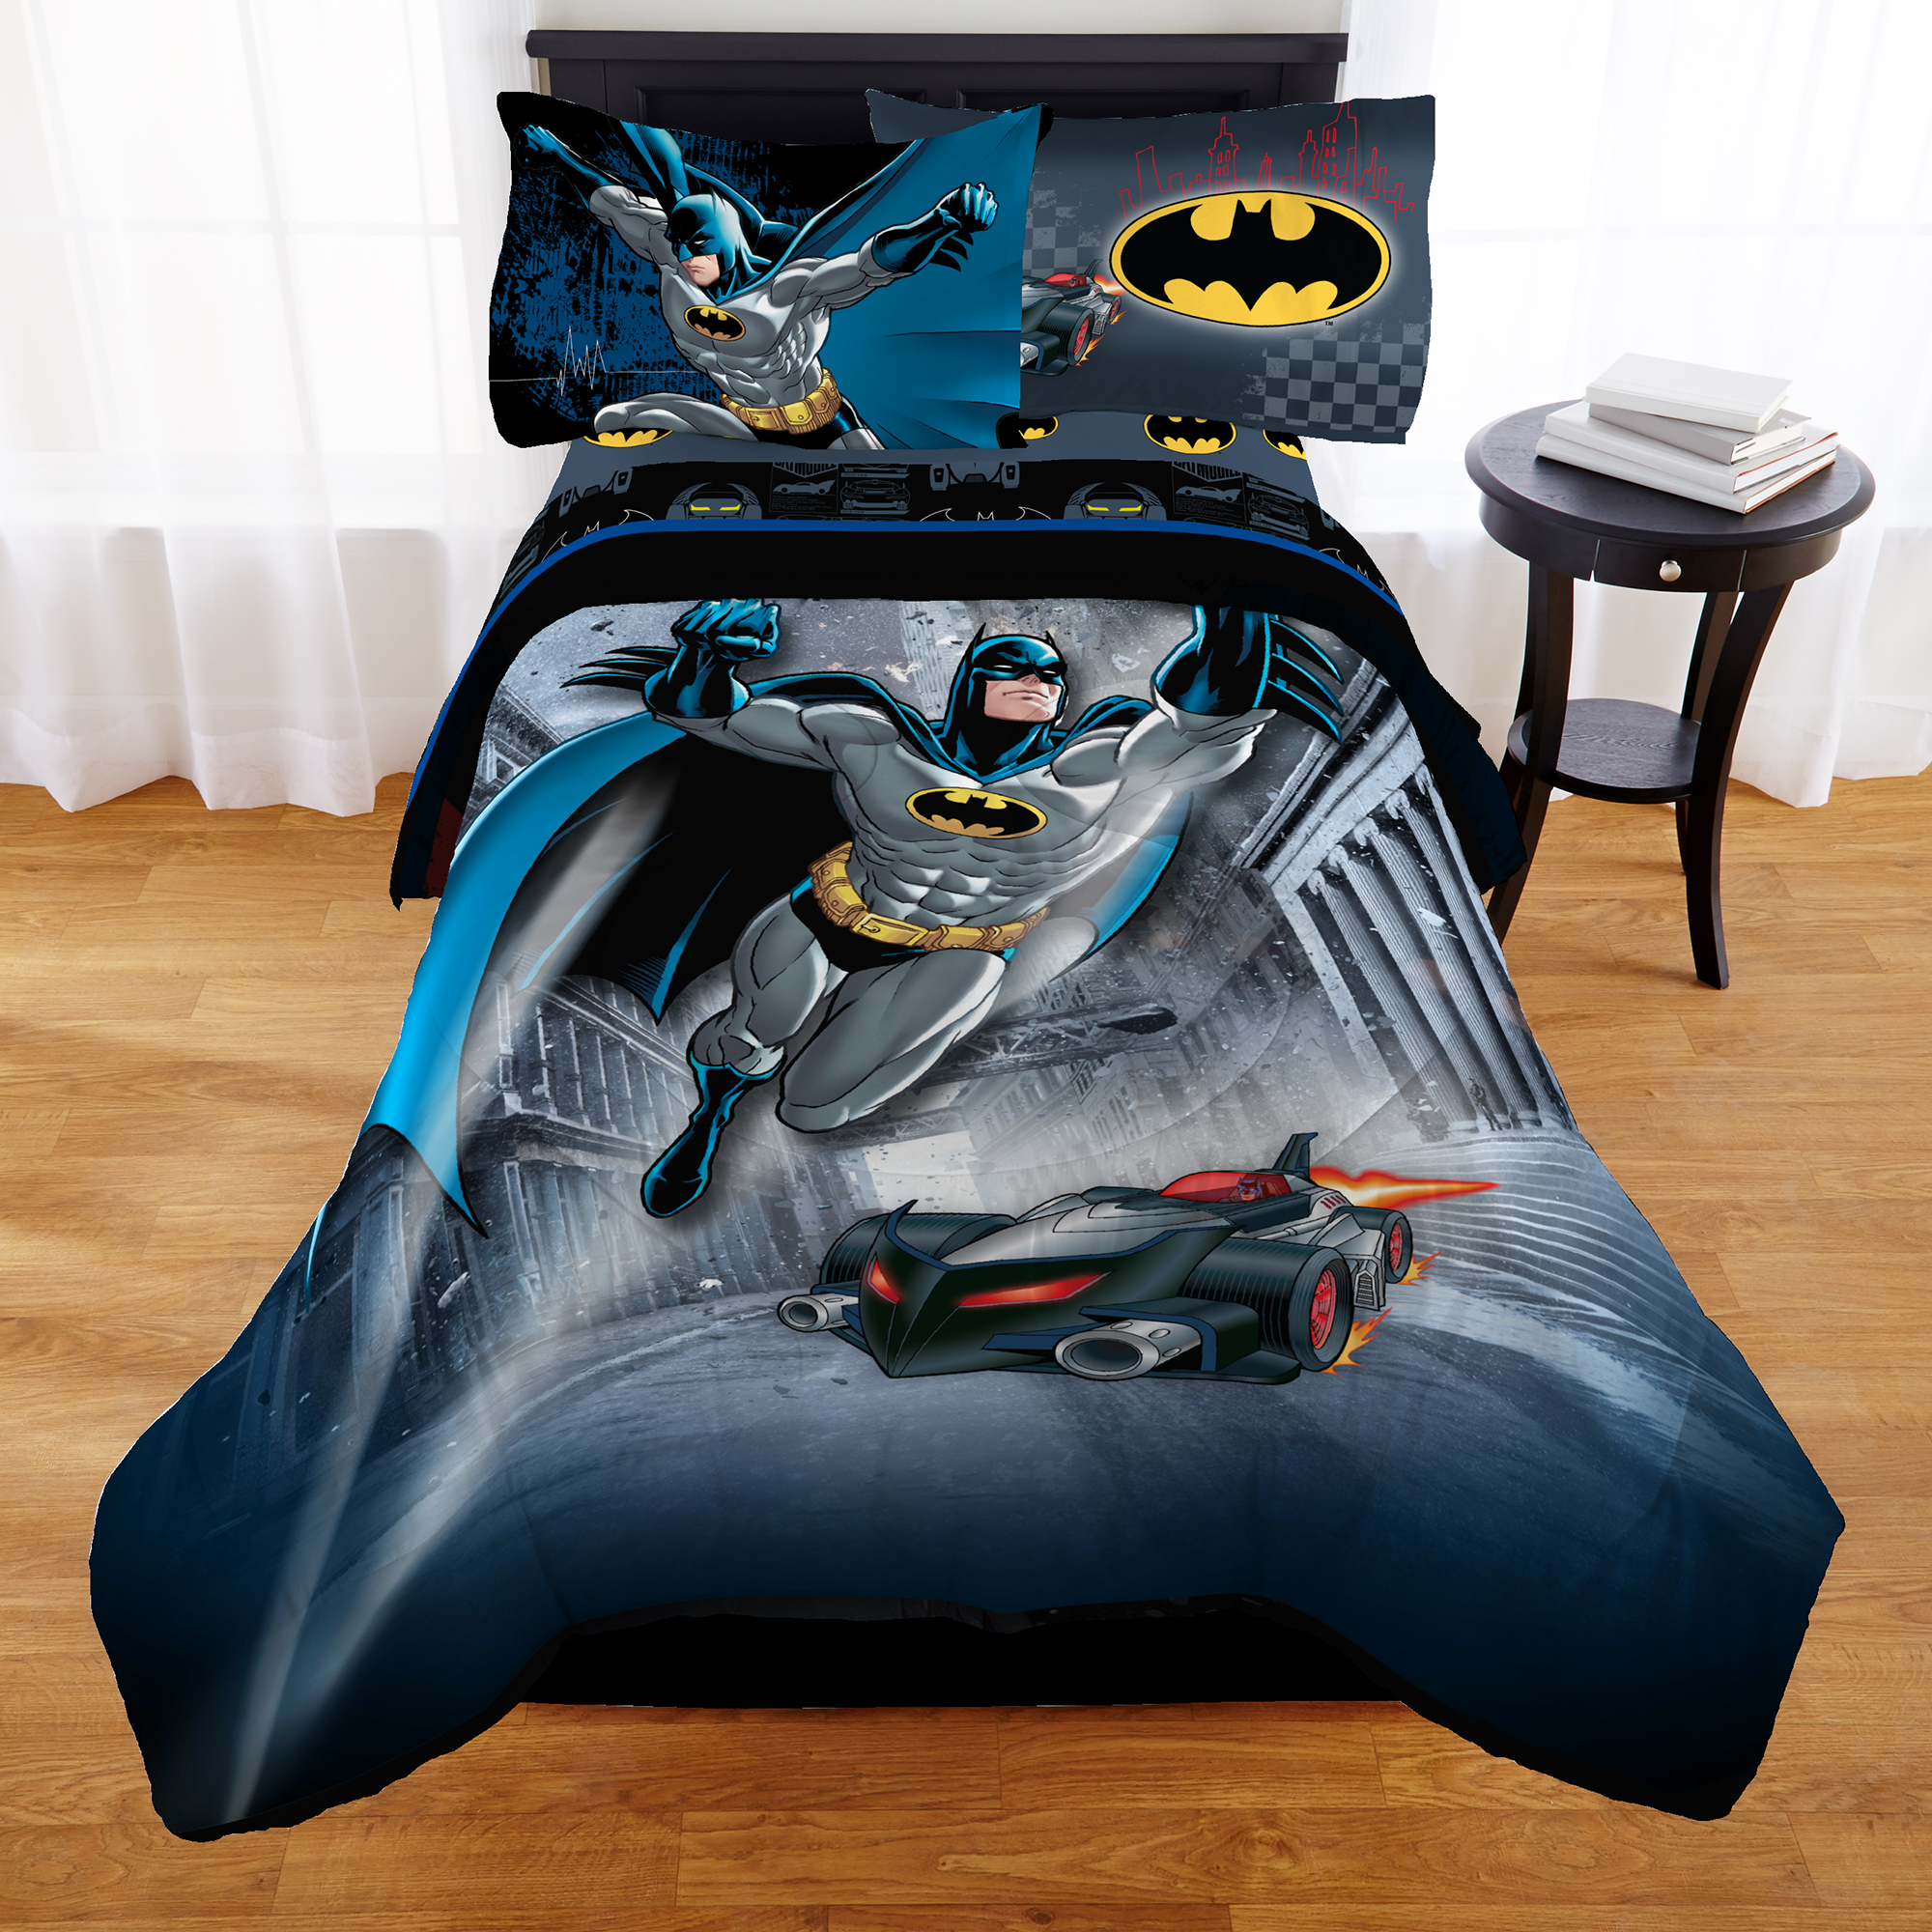 Warner Brothers Batman Guardian Speed Bed in a Bag Bedding Set by Franco